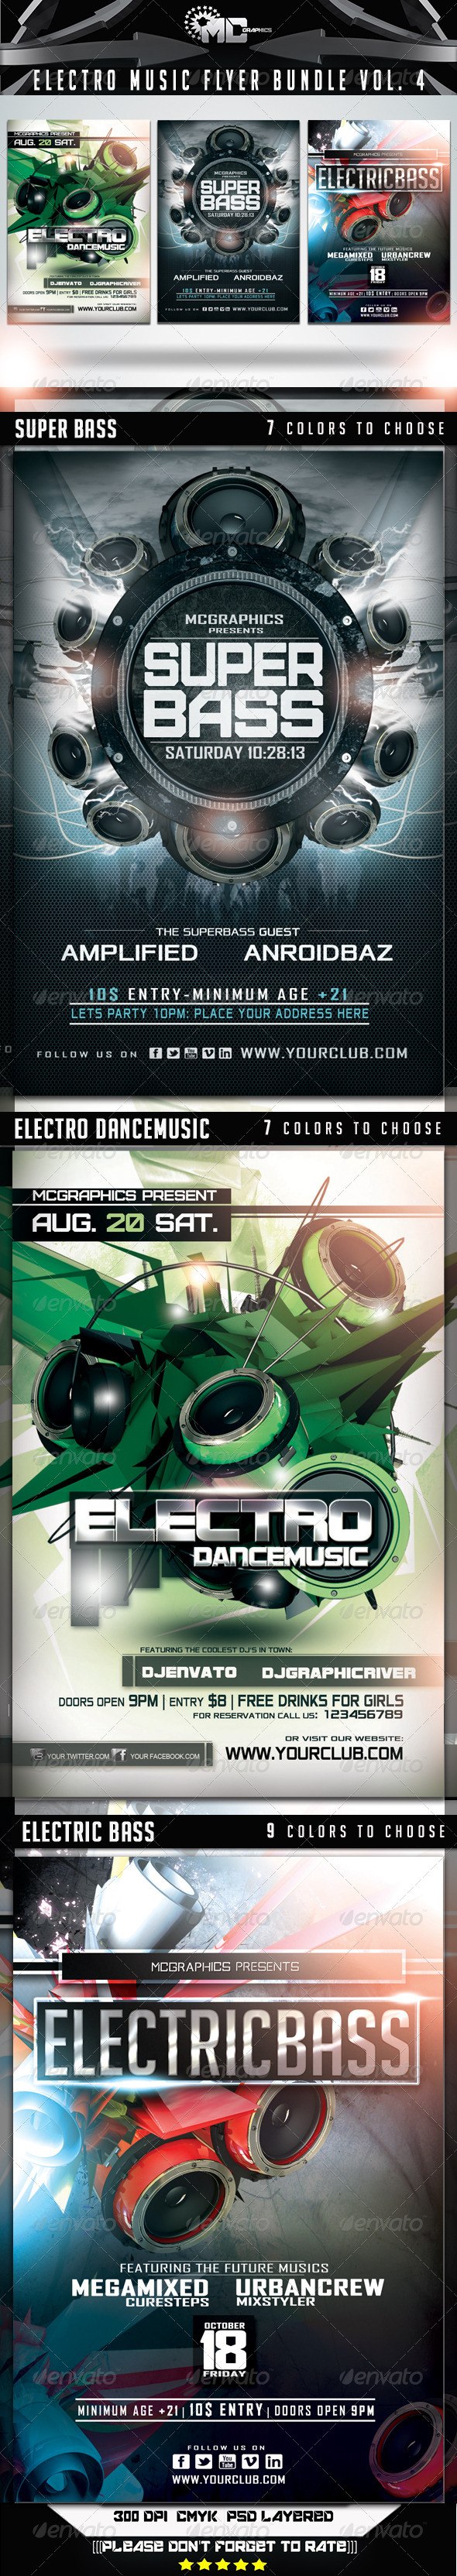 GraphicRiver Electro Music Flyer Bundle Vol 4 6932046